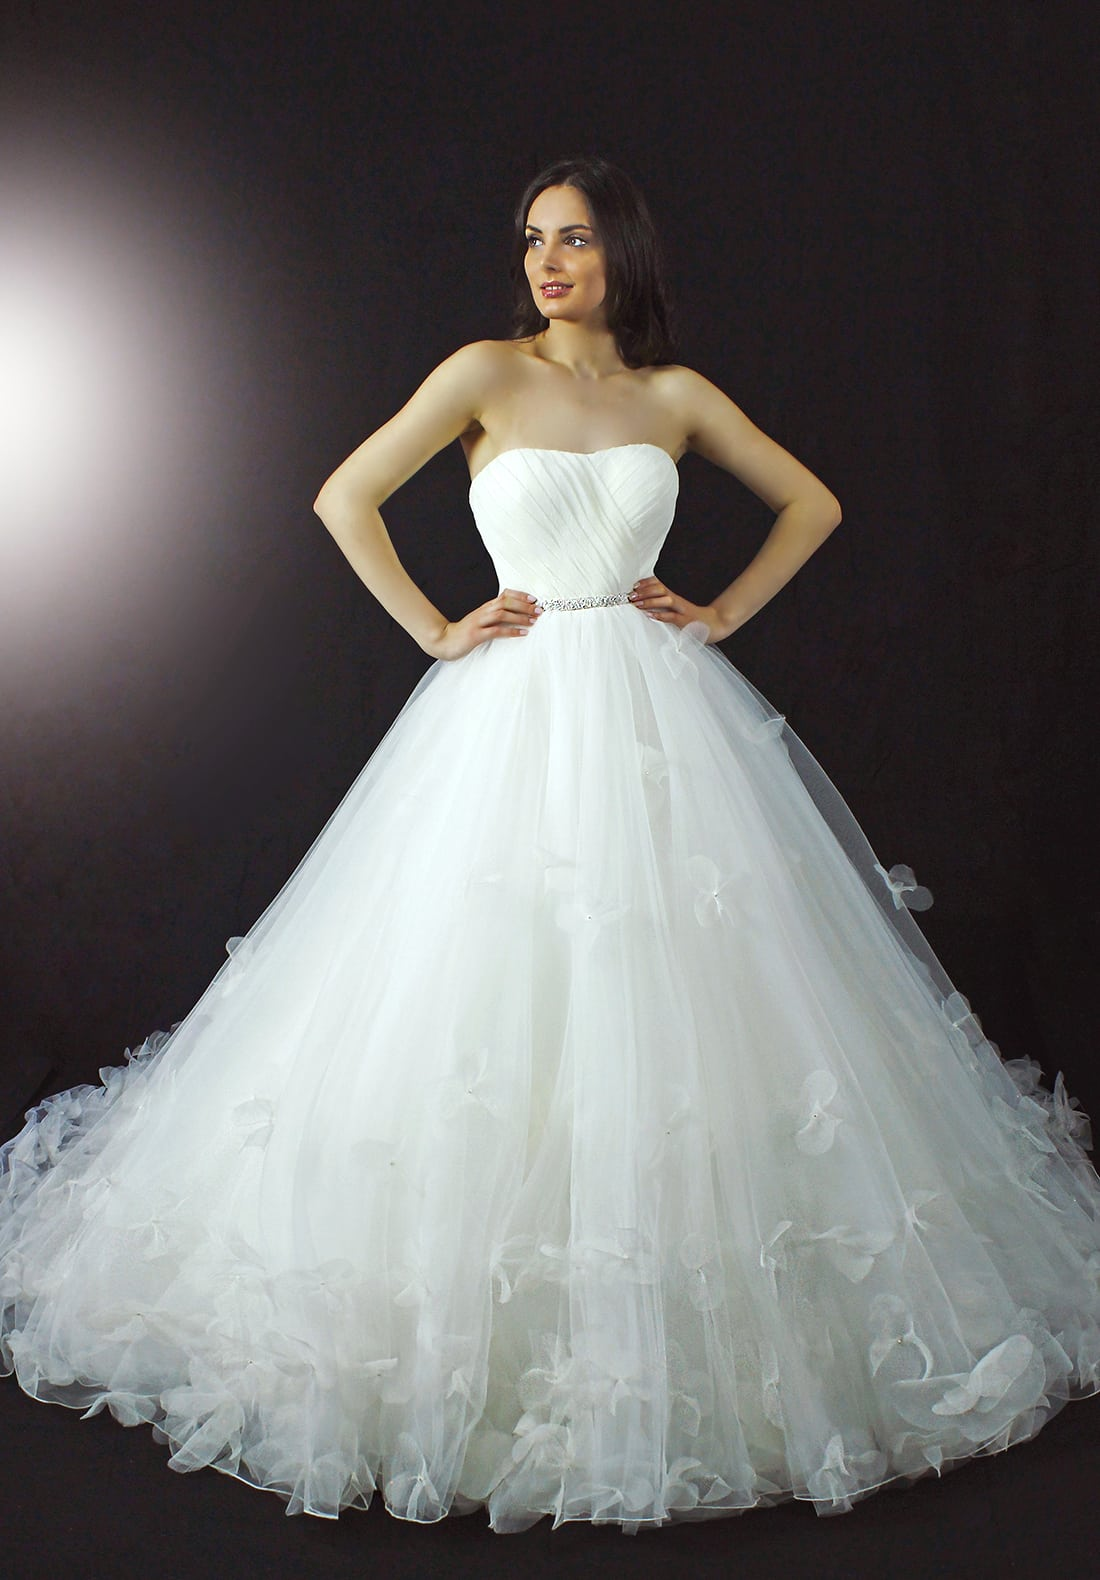 Pasha Model - Colectia Dreams - Adora Sposa